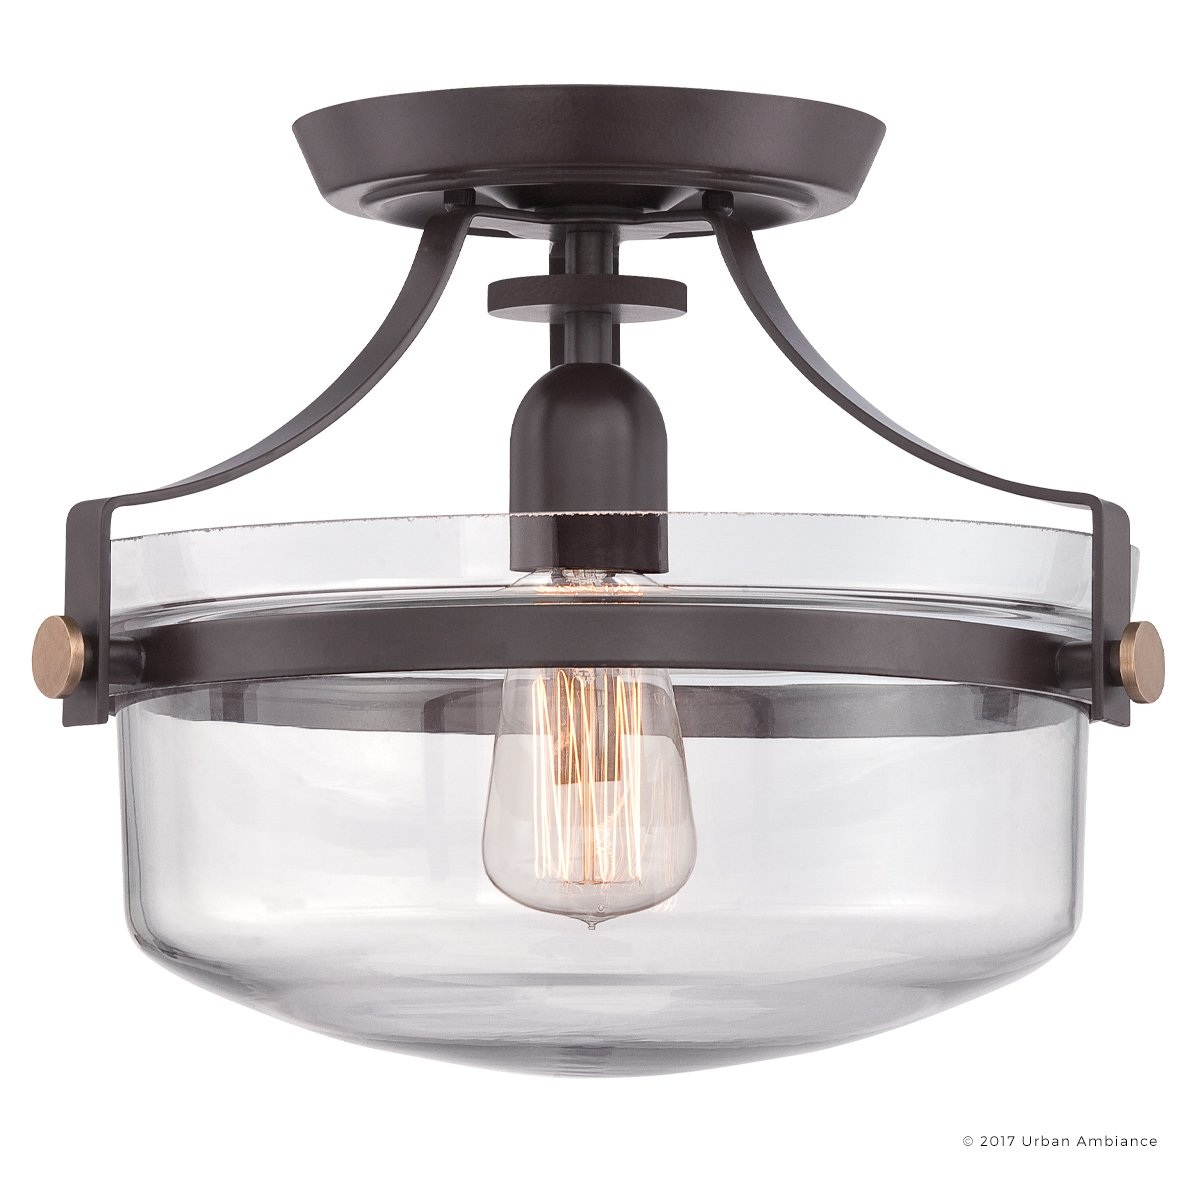 Luxury Vintage Semi-Flush Ceiling Light, Small Size: 10.5''H x 13''W, with Coastal Style Elements, Urn Design,Estate Bronze Finish and Clear Glass, Includes Edison Bulb, UQL2705 by Urban Ambiance